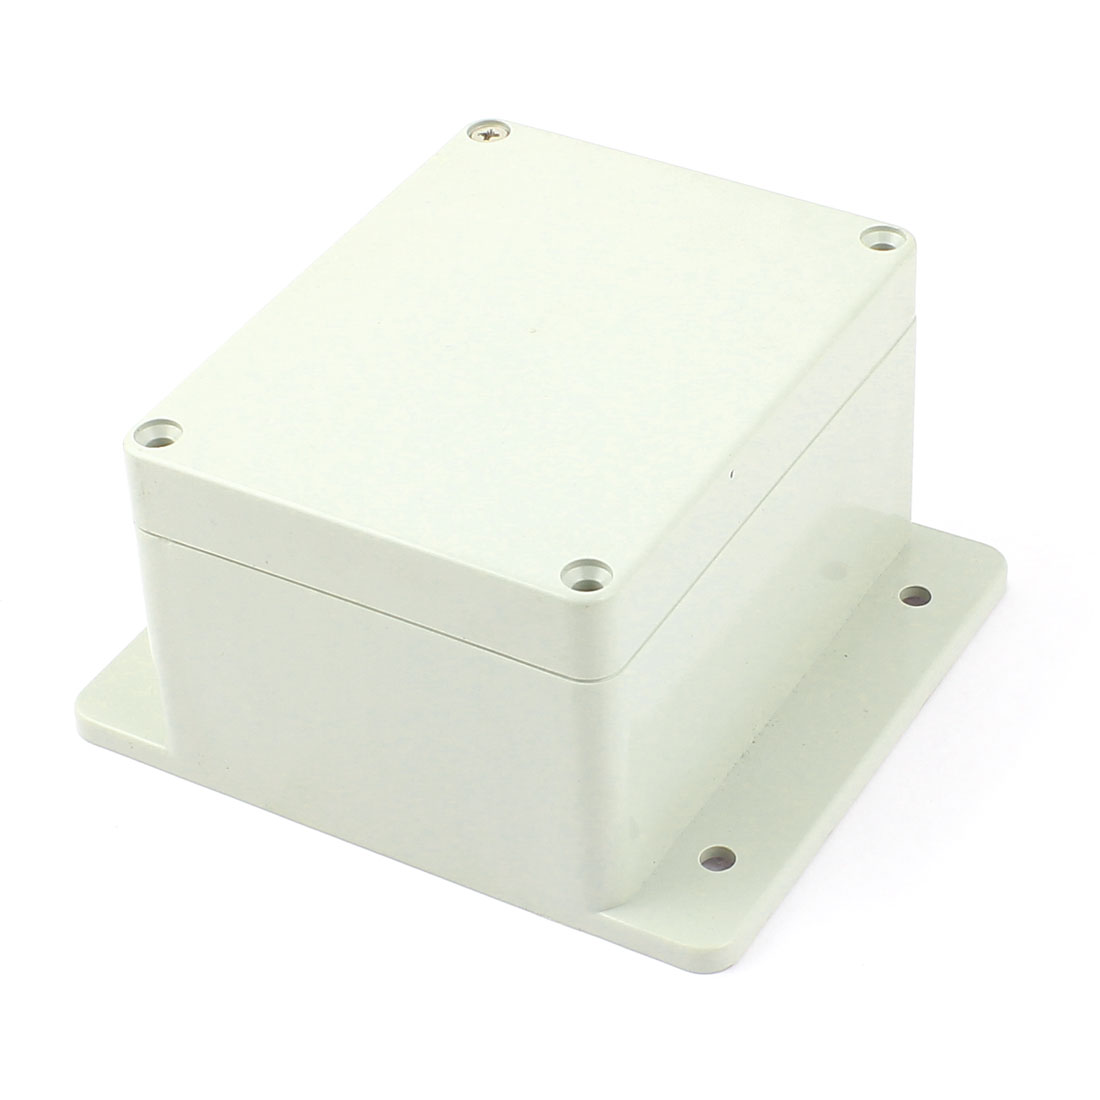 115mm x 90mm x 68mm Dustproof IP65 Plastic Enclosure DIY Junction Box